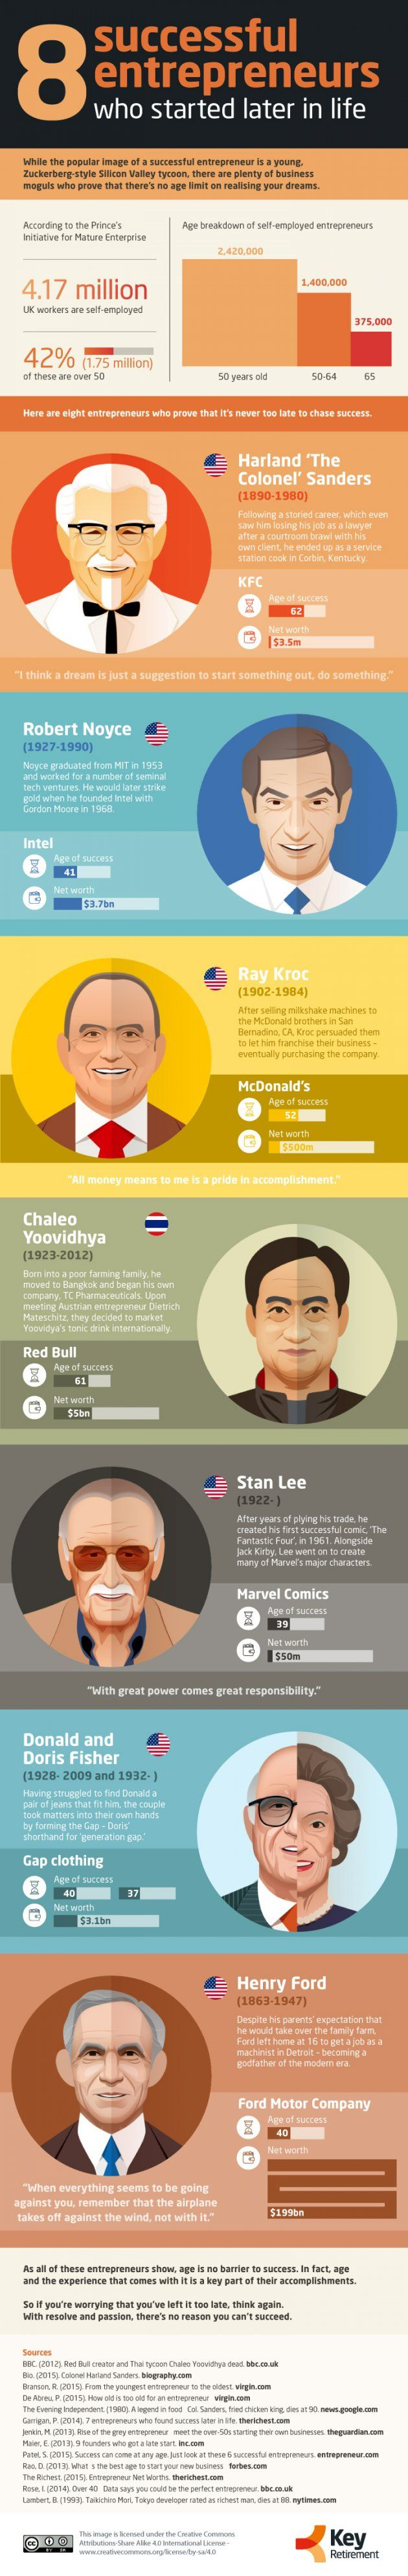 8 Successful Entrepreneurs Who Started Late In Life (Infographic) | Inc.com